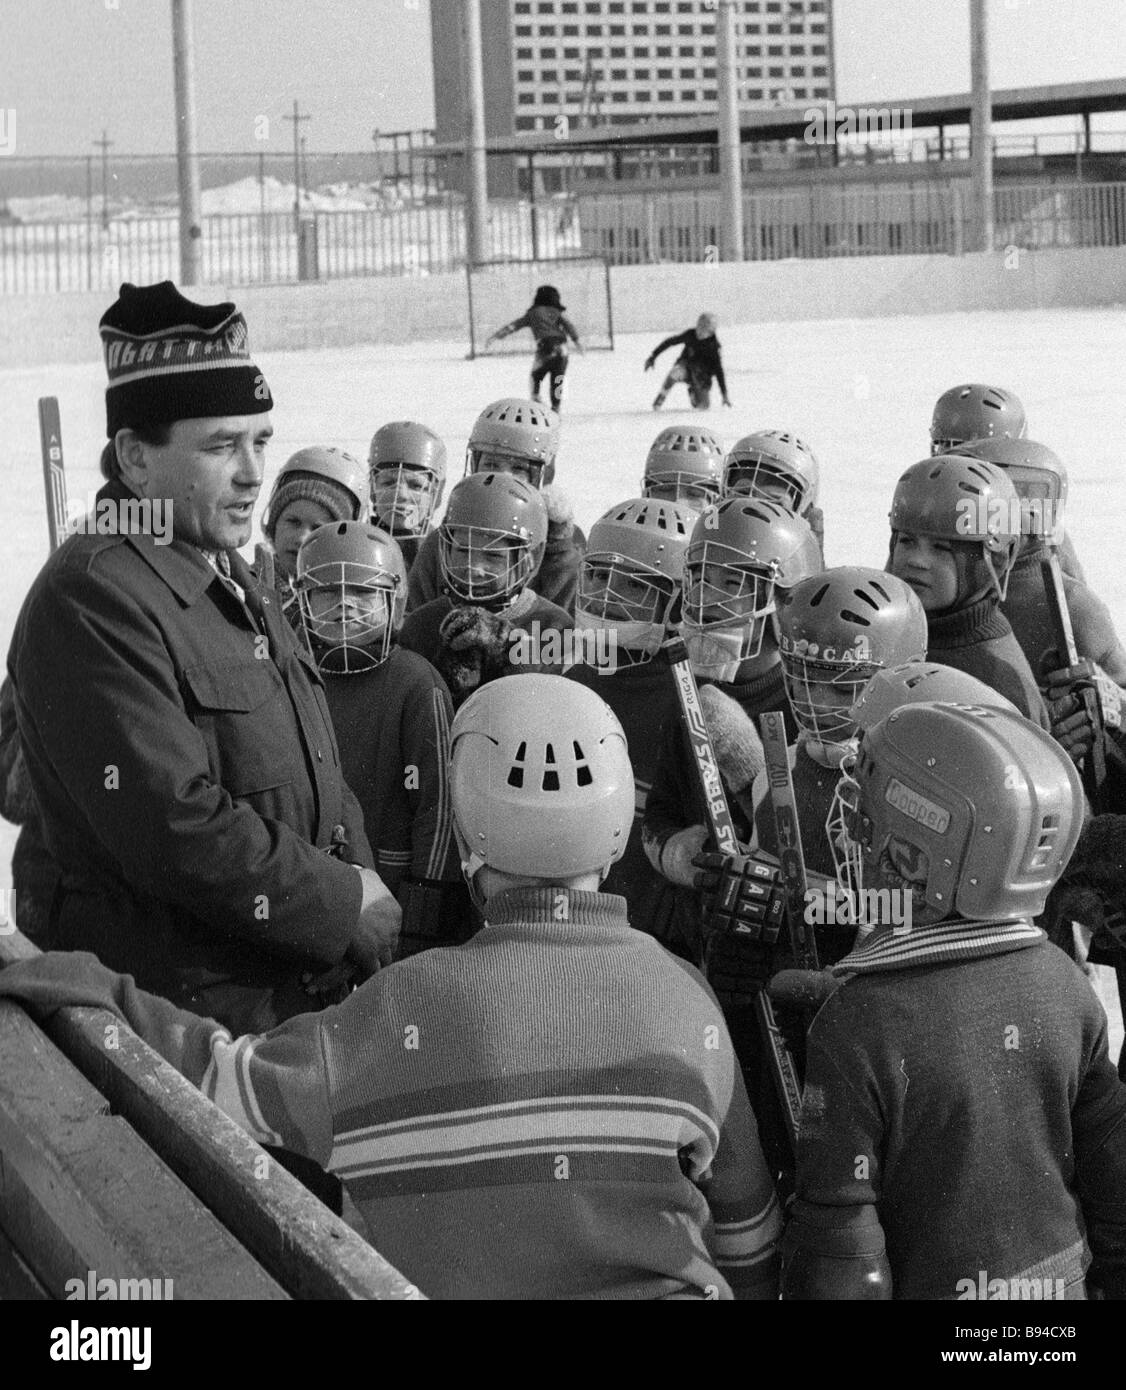 Budding hockey players listening to the story of the USSR circular track racing champion Nikolai Bakhrumov - Stock Image